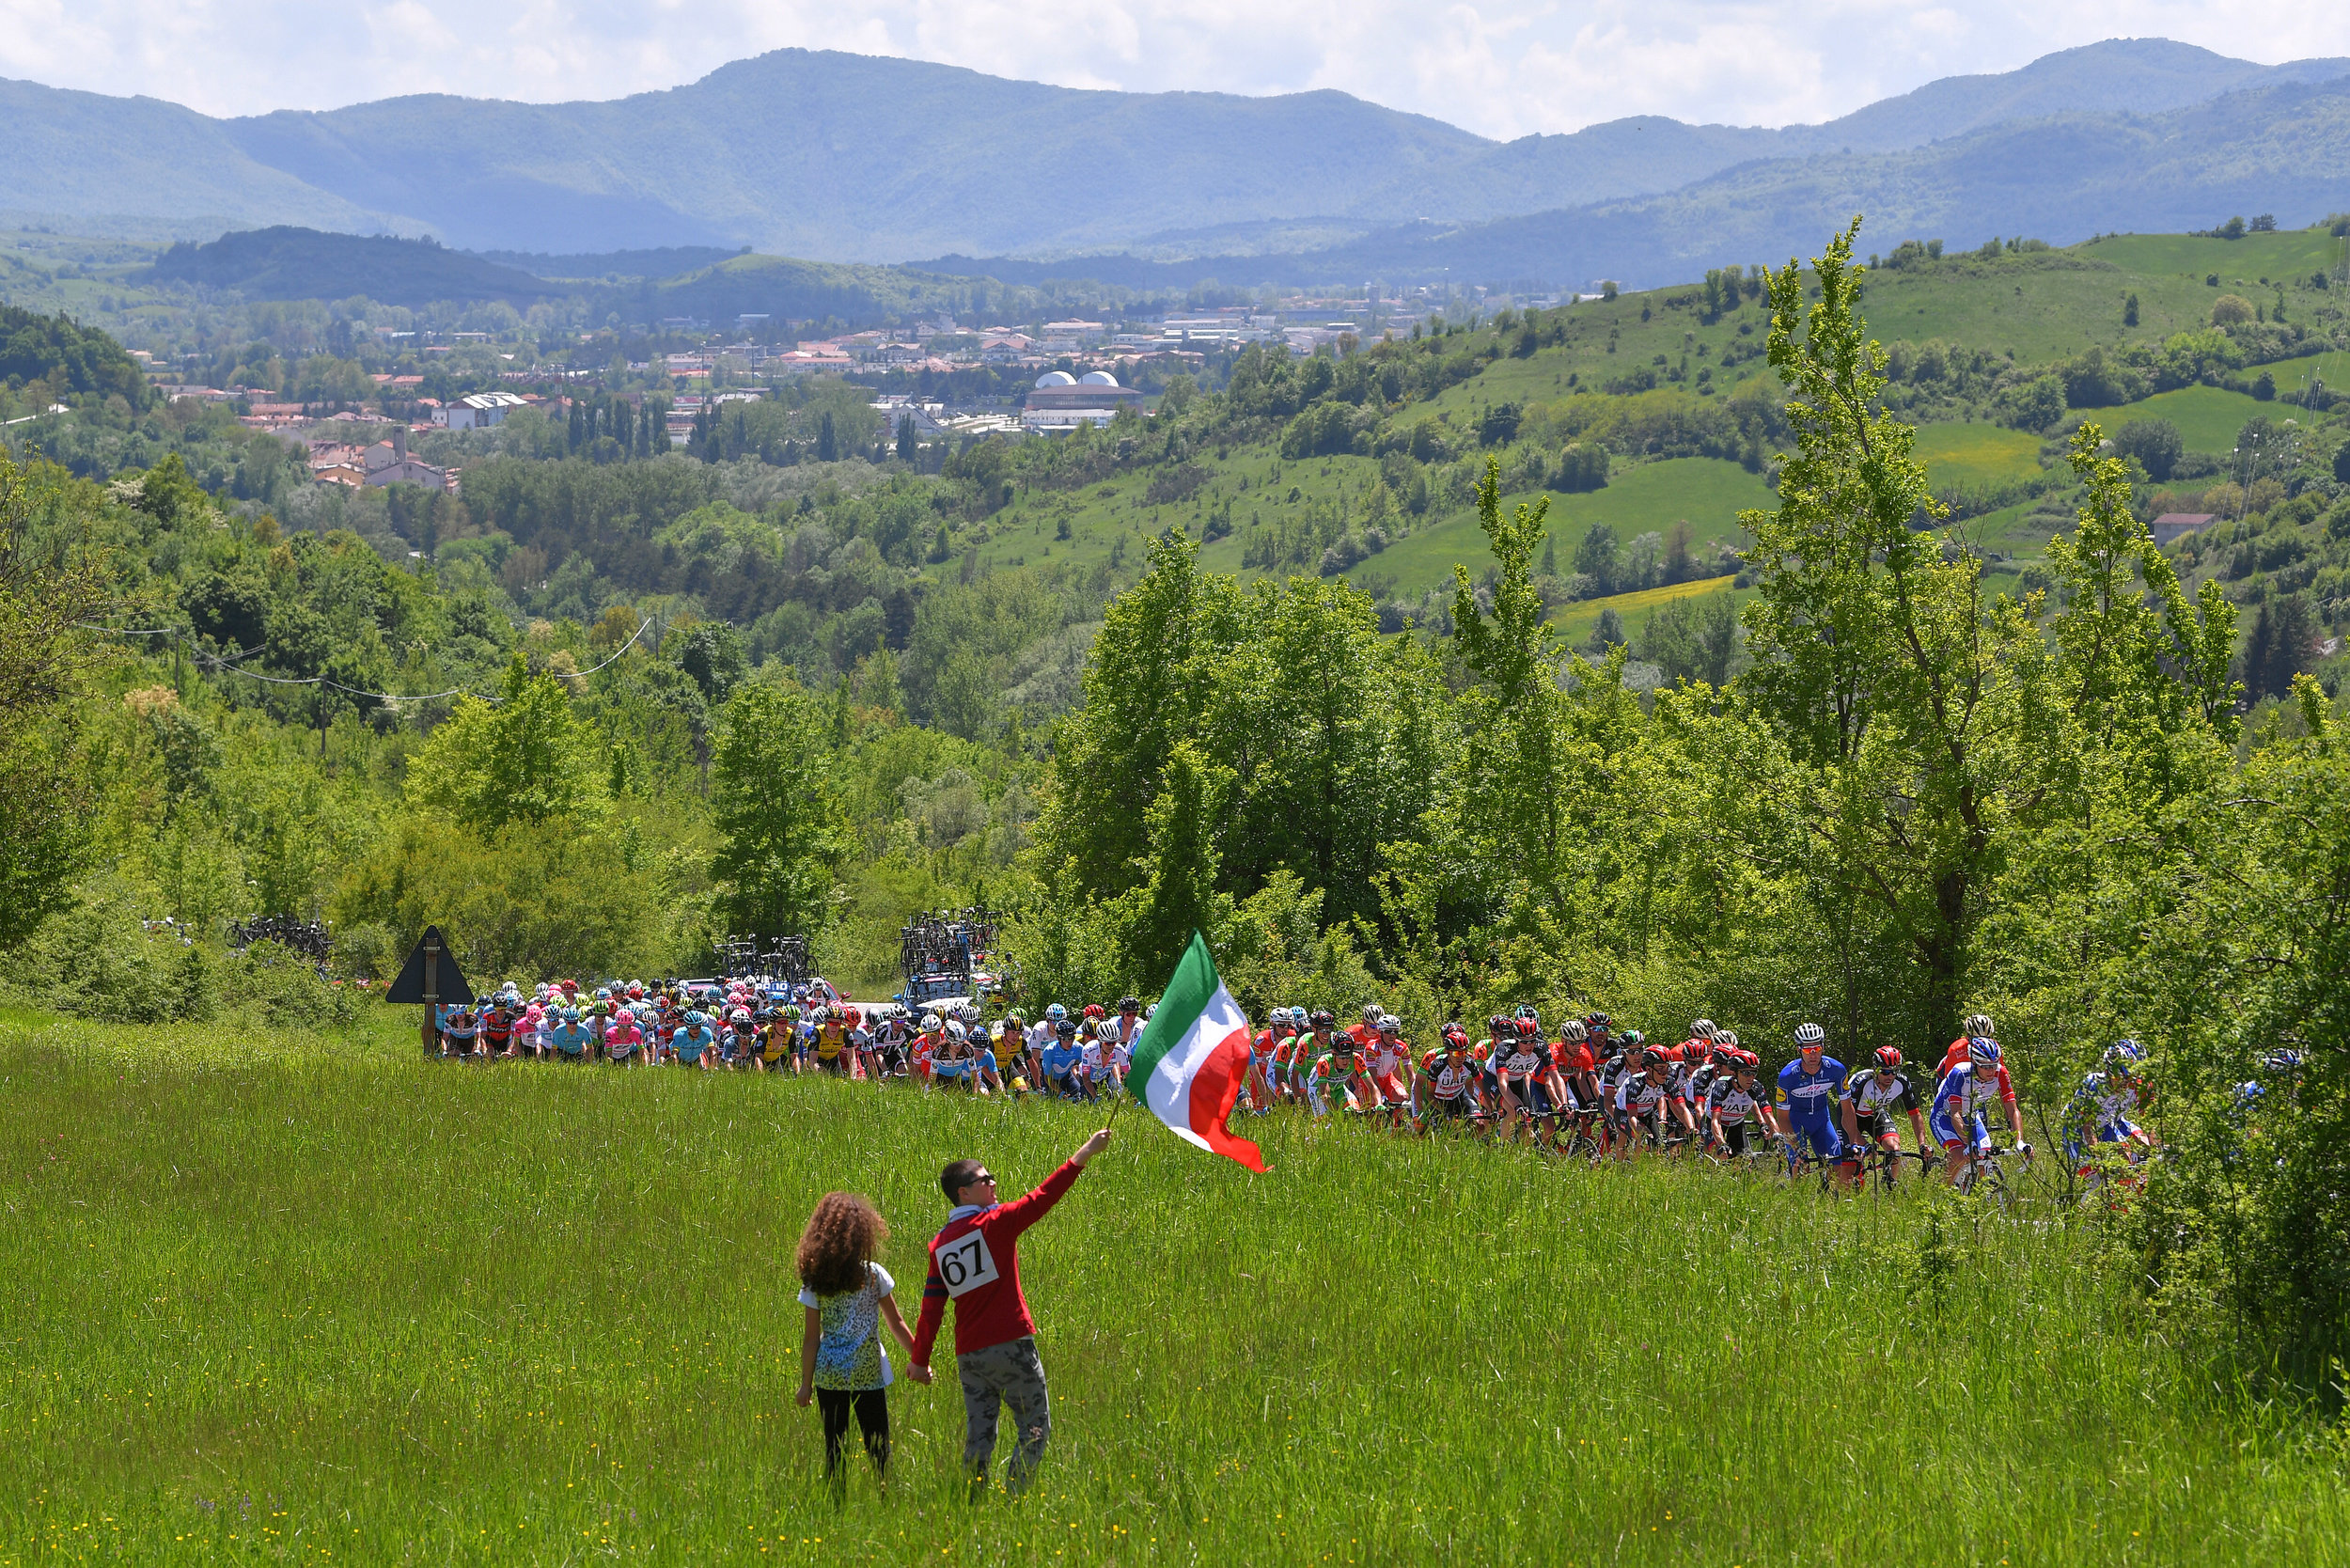 The 2018 Giro d'Italia rolls through picturesque Italian countryside (Getty Images)